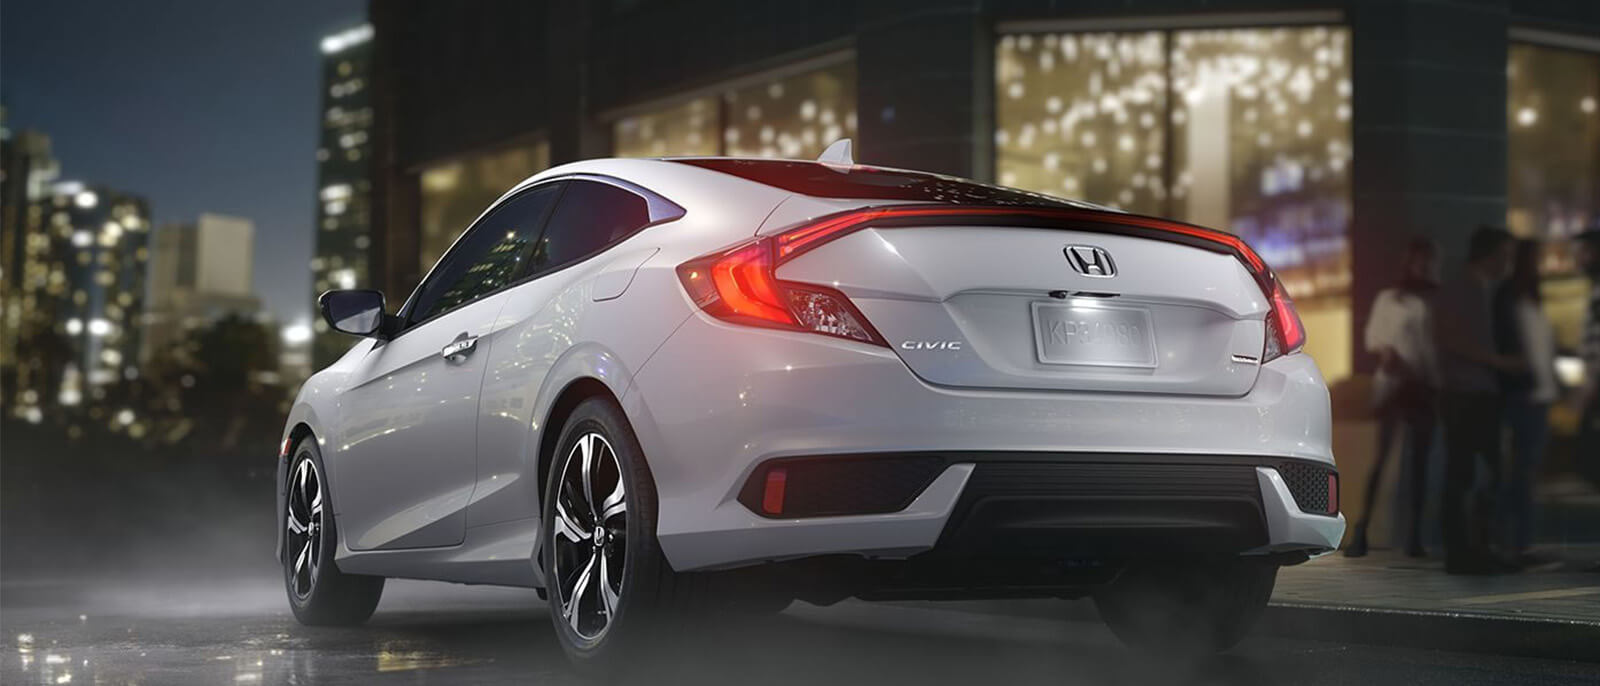 2017-Honda-Civic-Coupe-Slide1-2